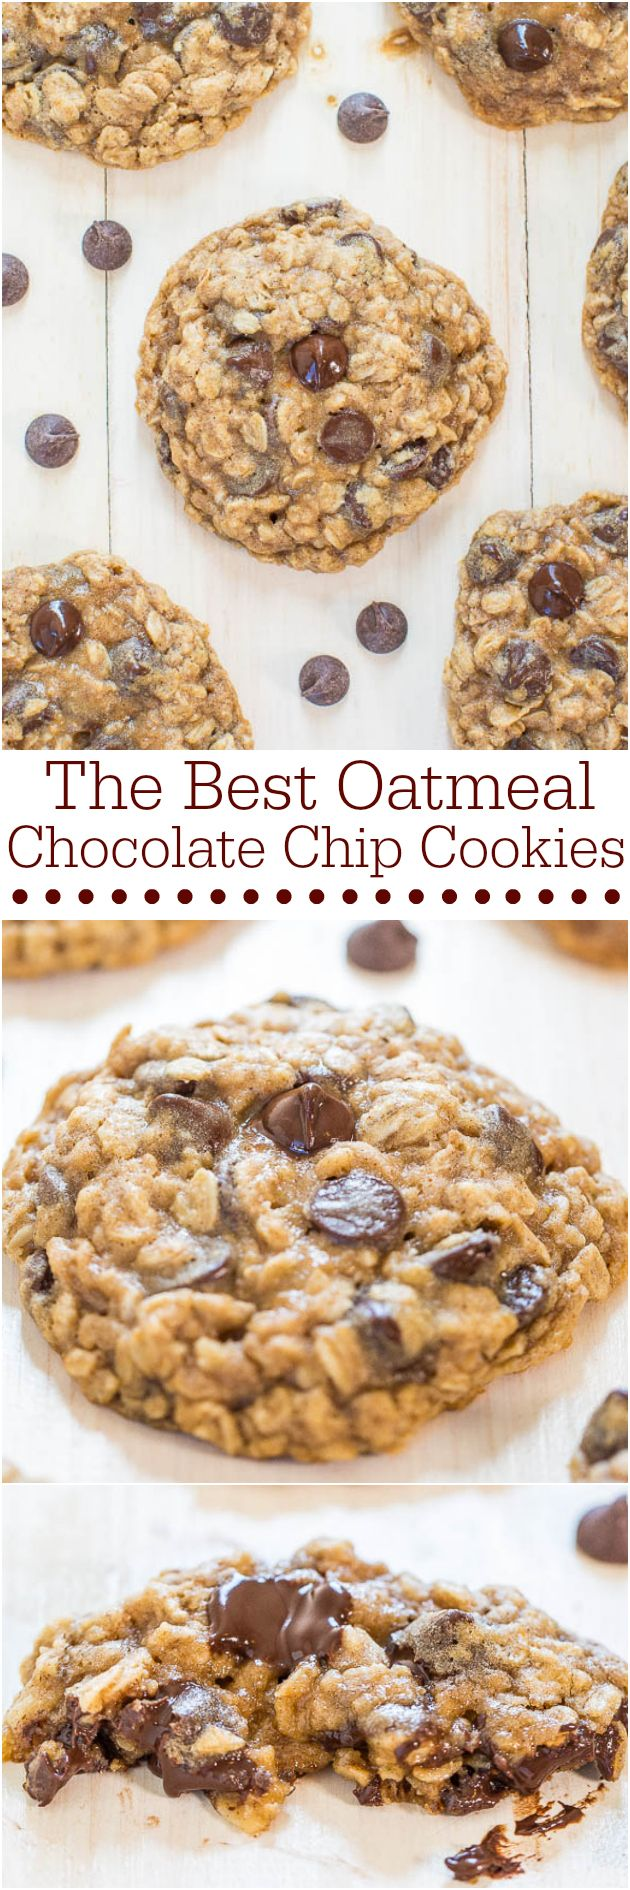 The Best Oatmeal Chocolate Chip Cookies - Soft, chewy, loaded with chocolate, and they turn out perfectly every time! Totally irresistible!! A crowd favorite at any event!